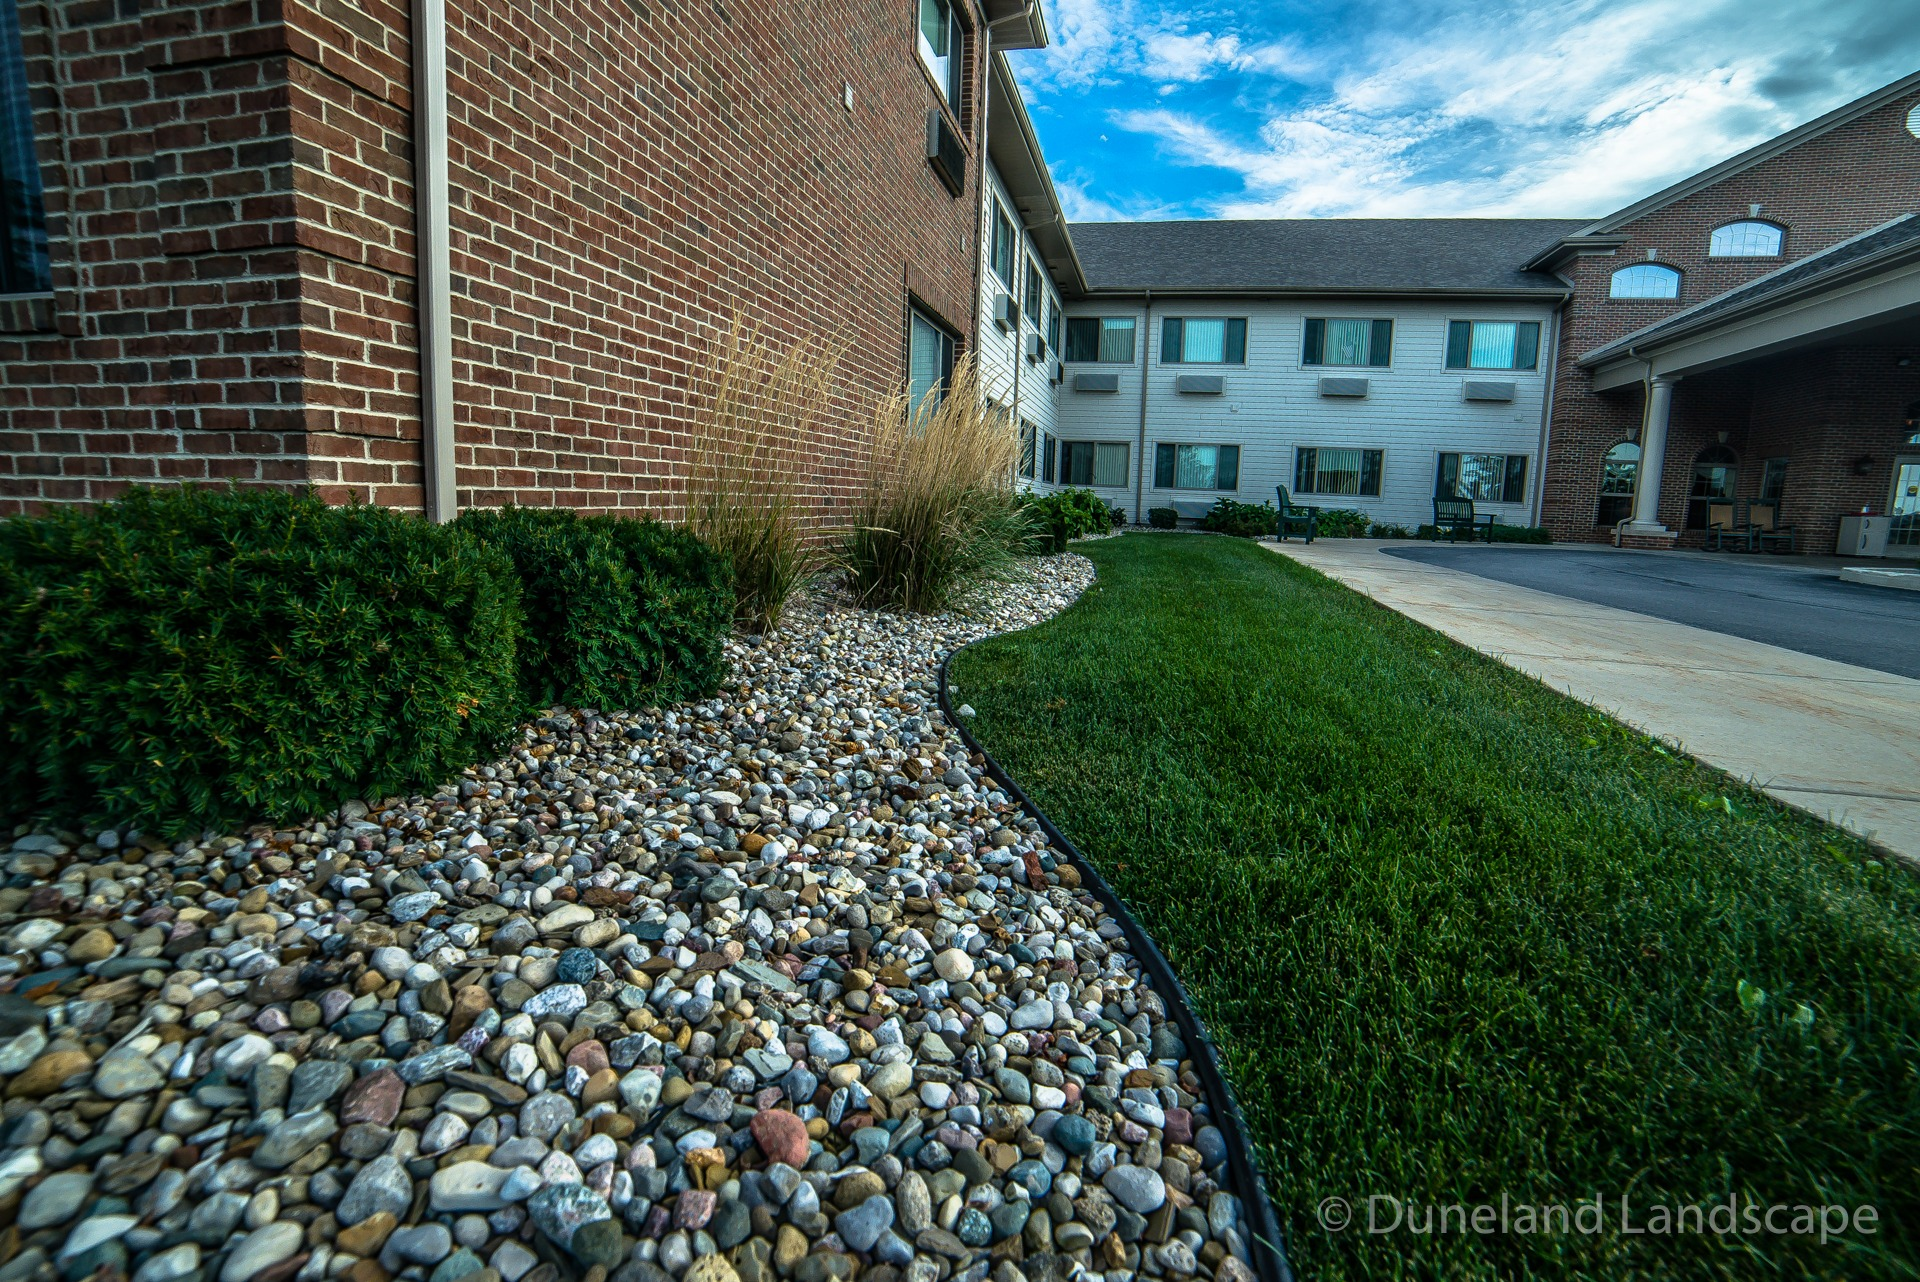 landscaping ideas for apartment complexes